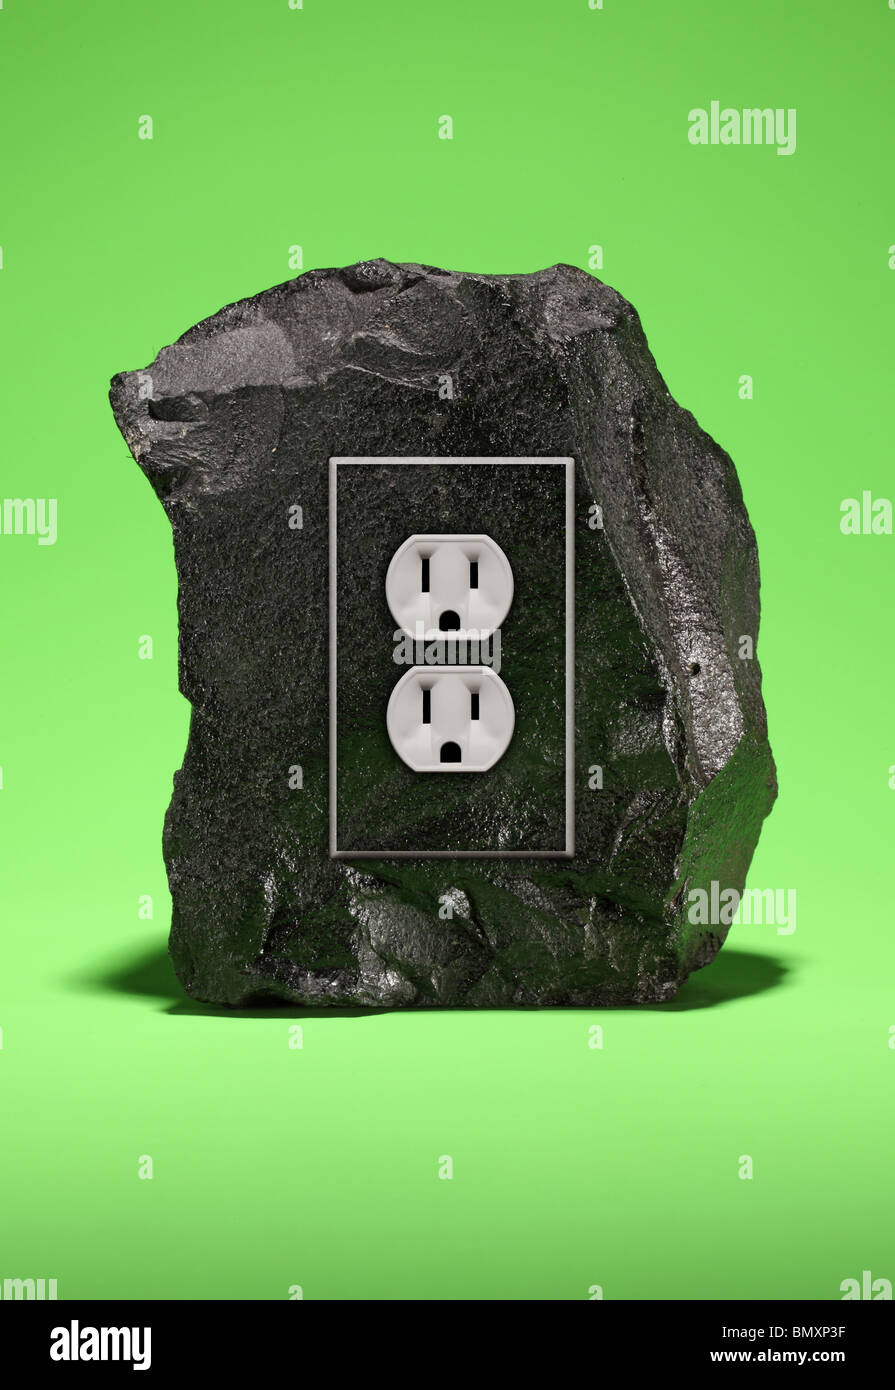 A large black chunk of coal with an electrical power outlet fixture on a bright green background. - Stock Image